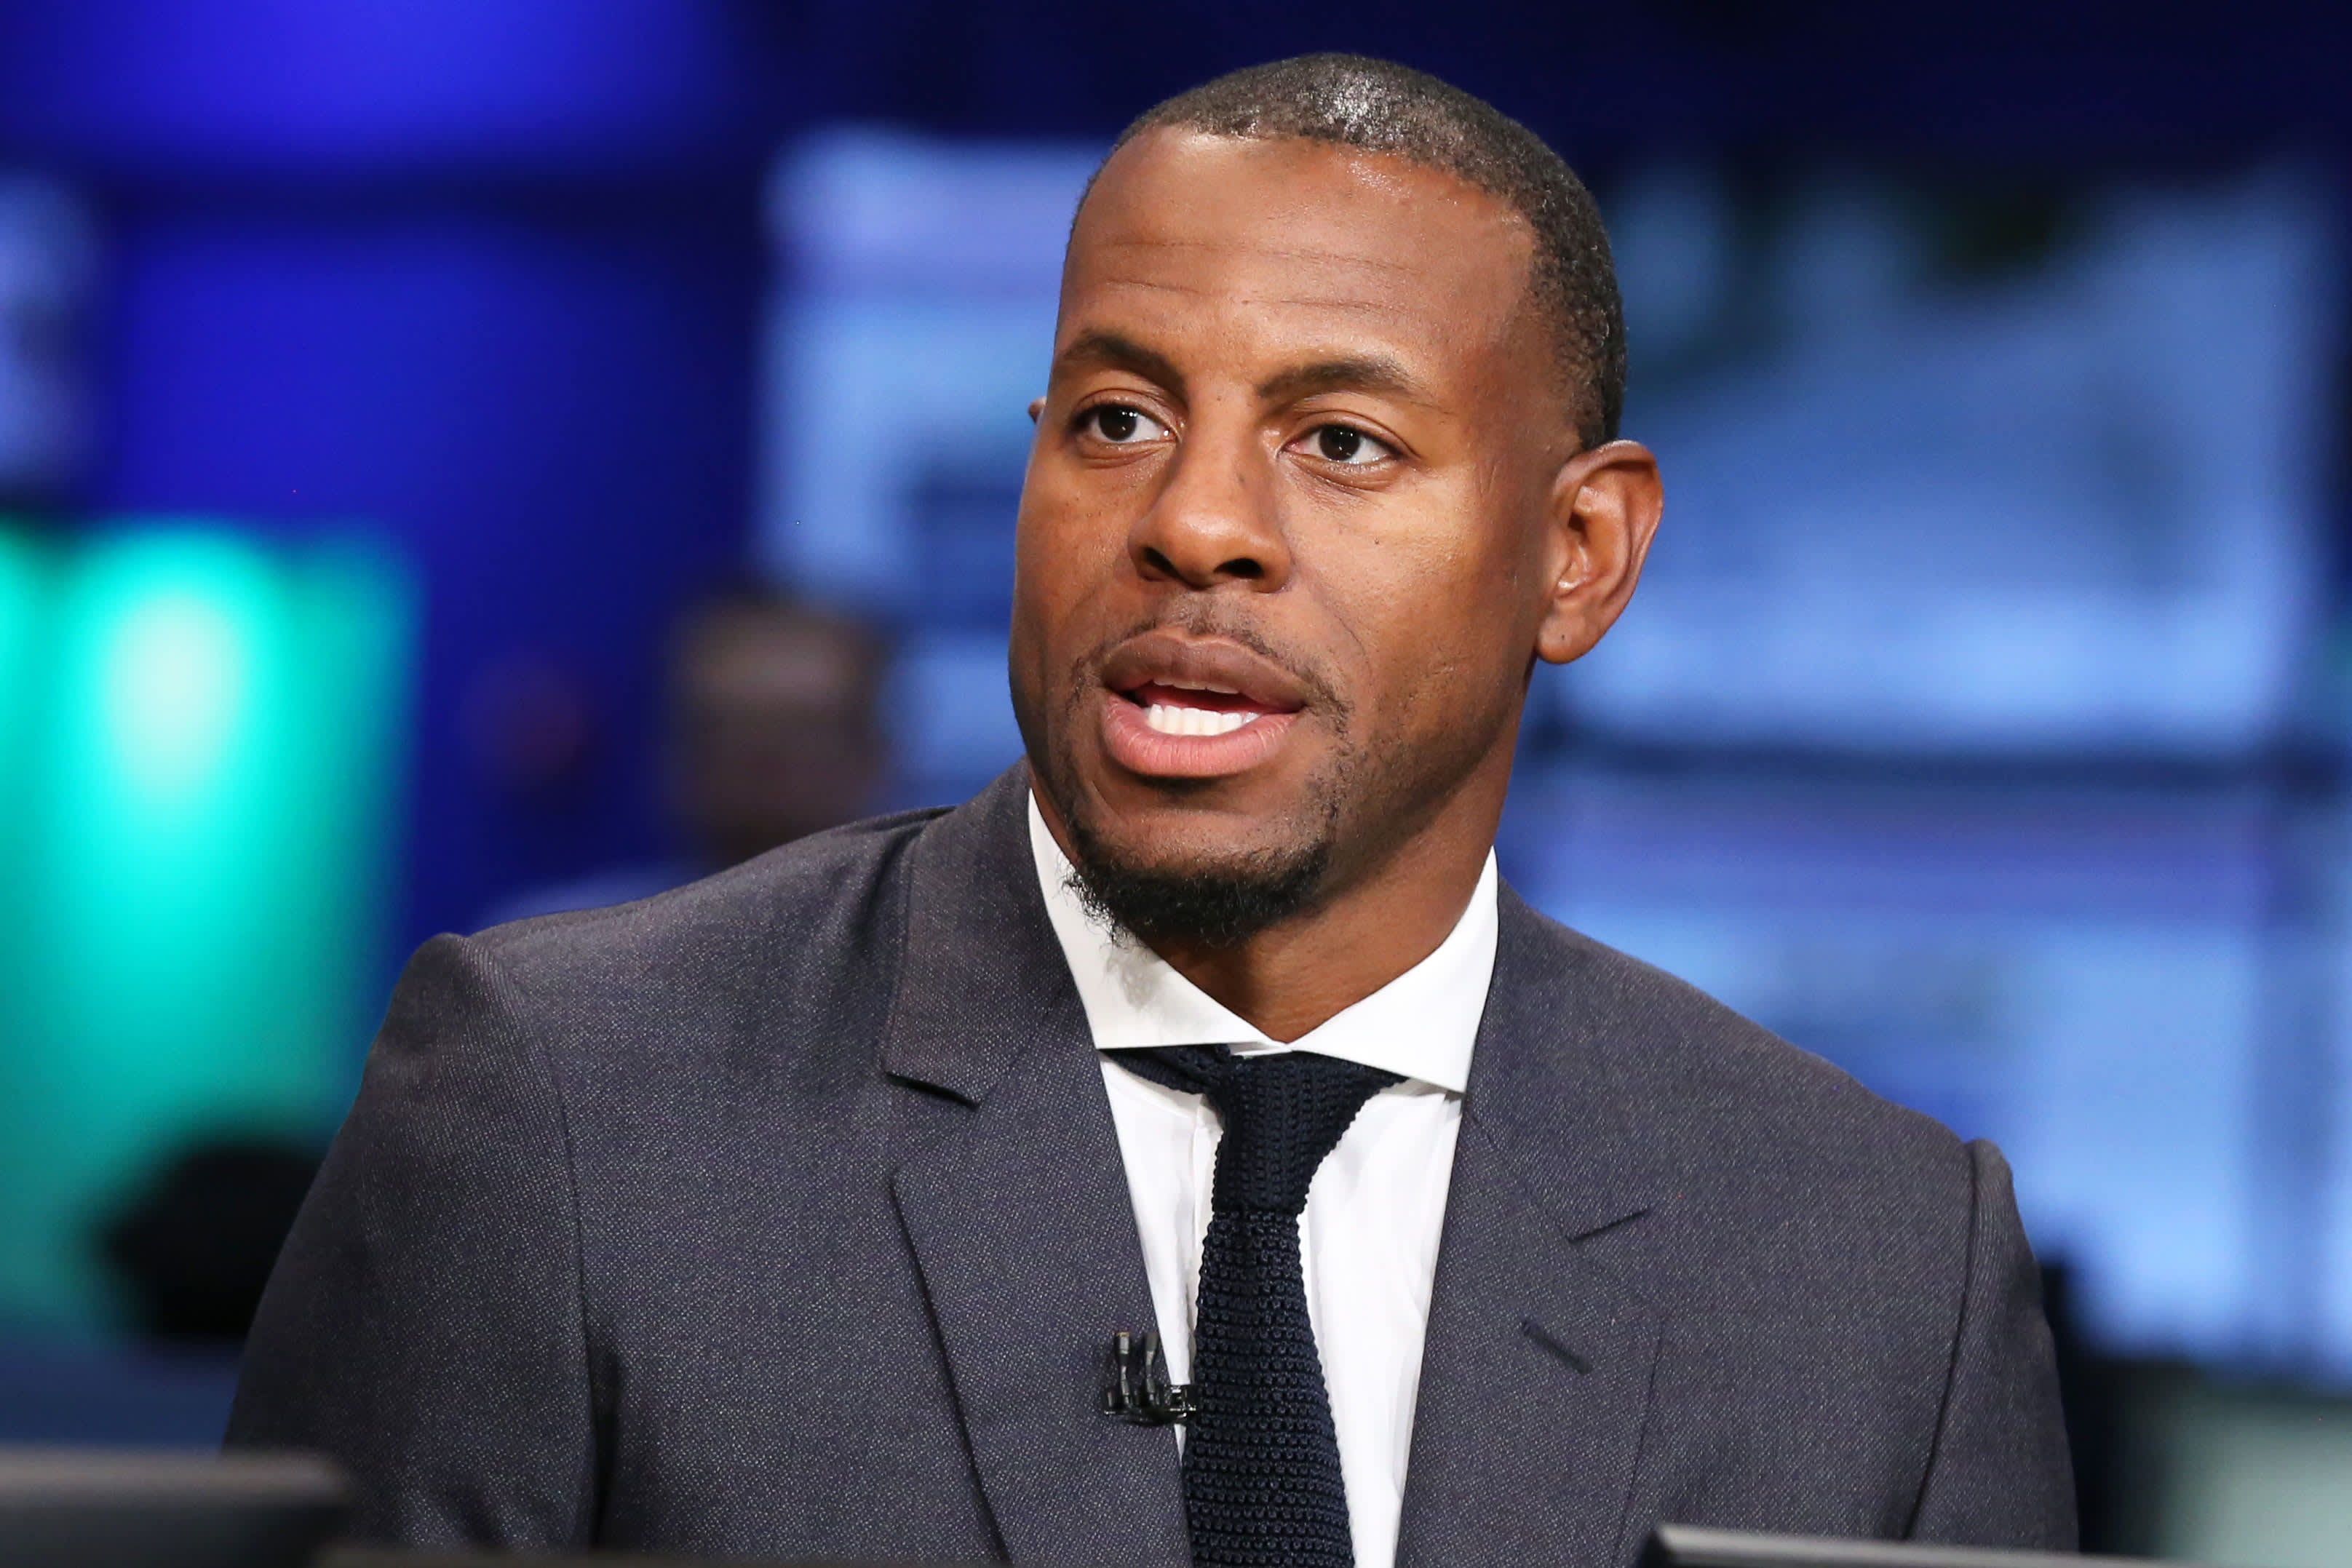 NBA champ and tech investor Andre Iguodala counts Zoom's triple since IPO as best investment